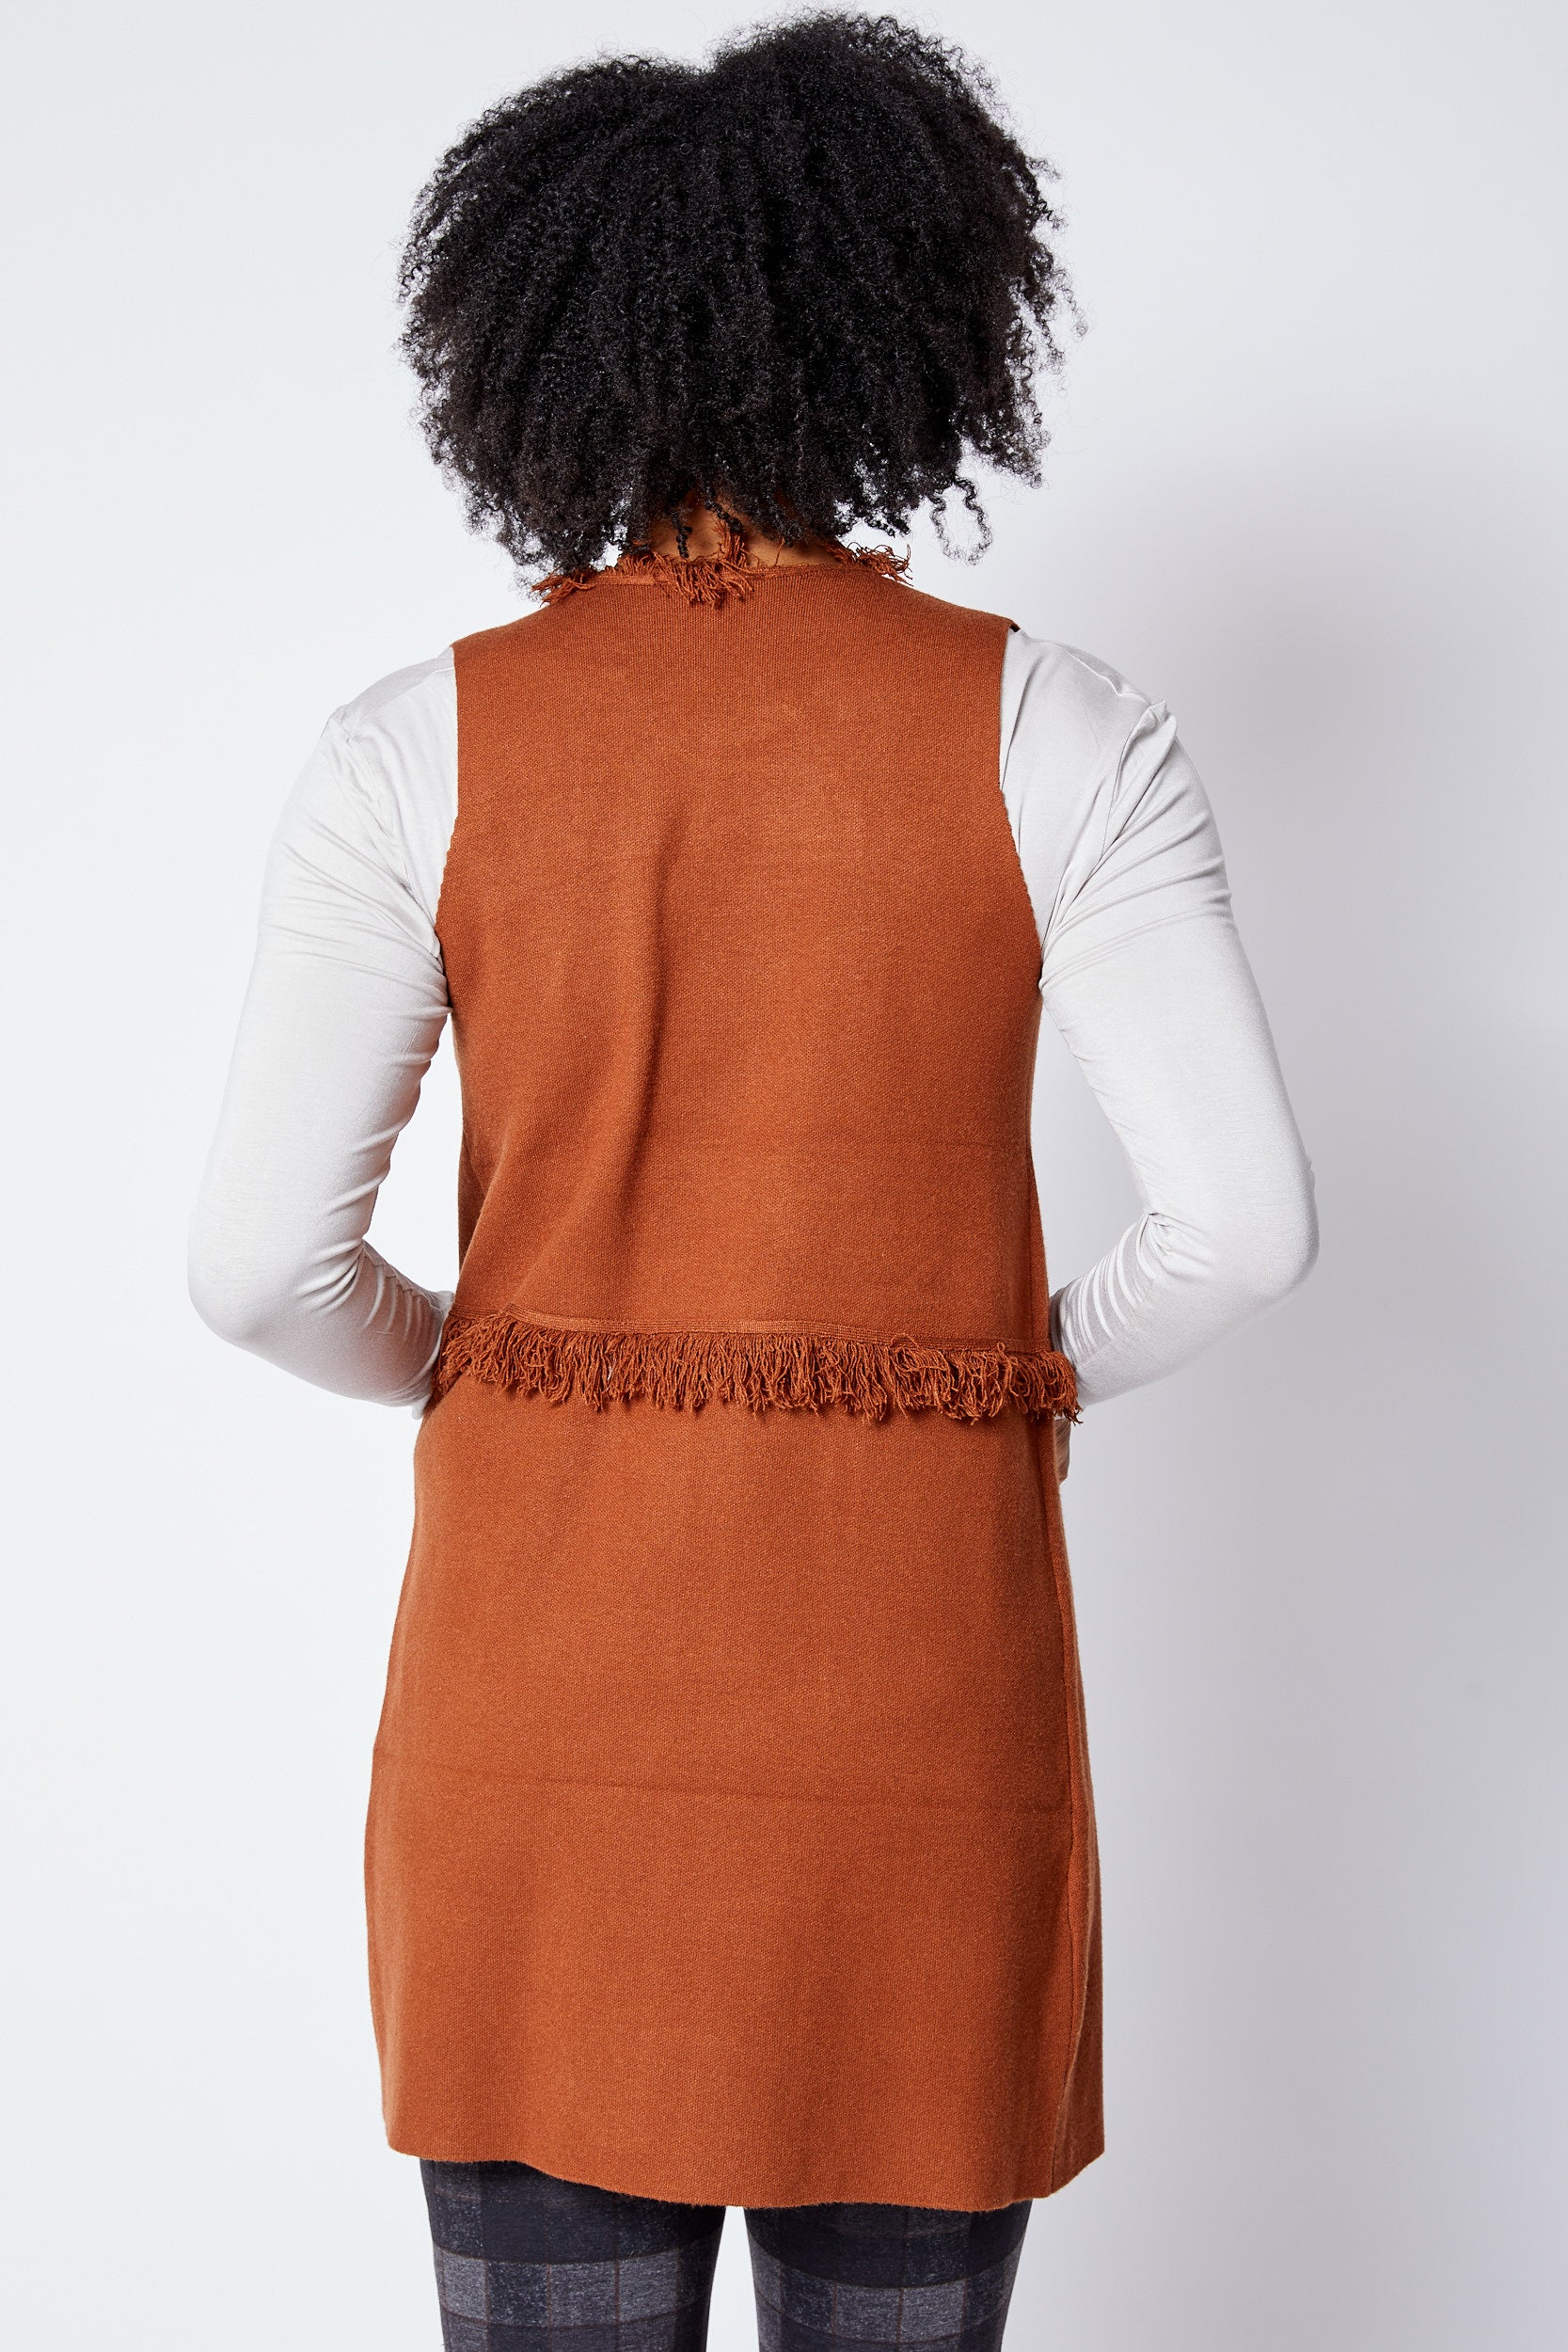 Fringe Sweater Vest - Jacqueline B Clothing